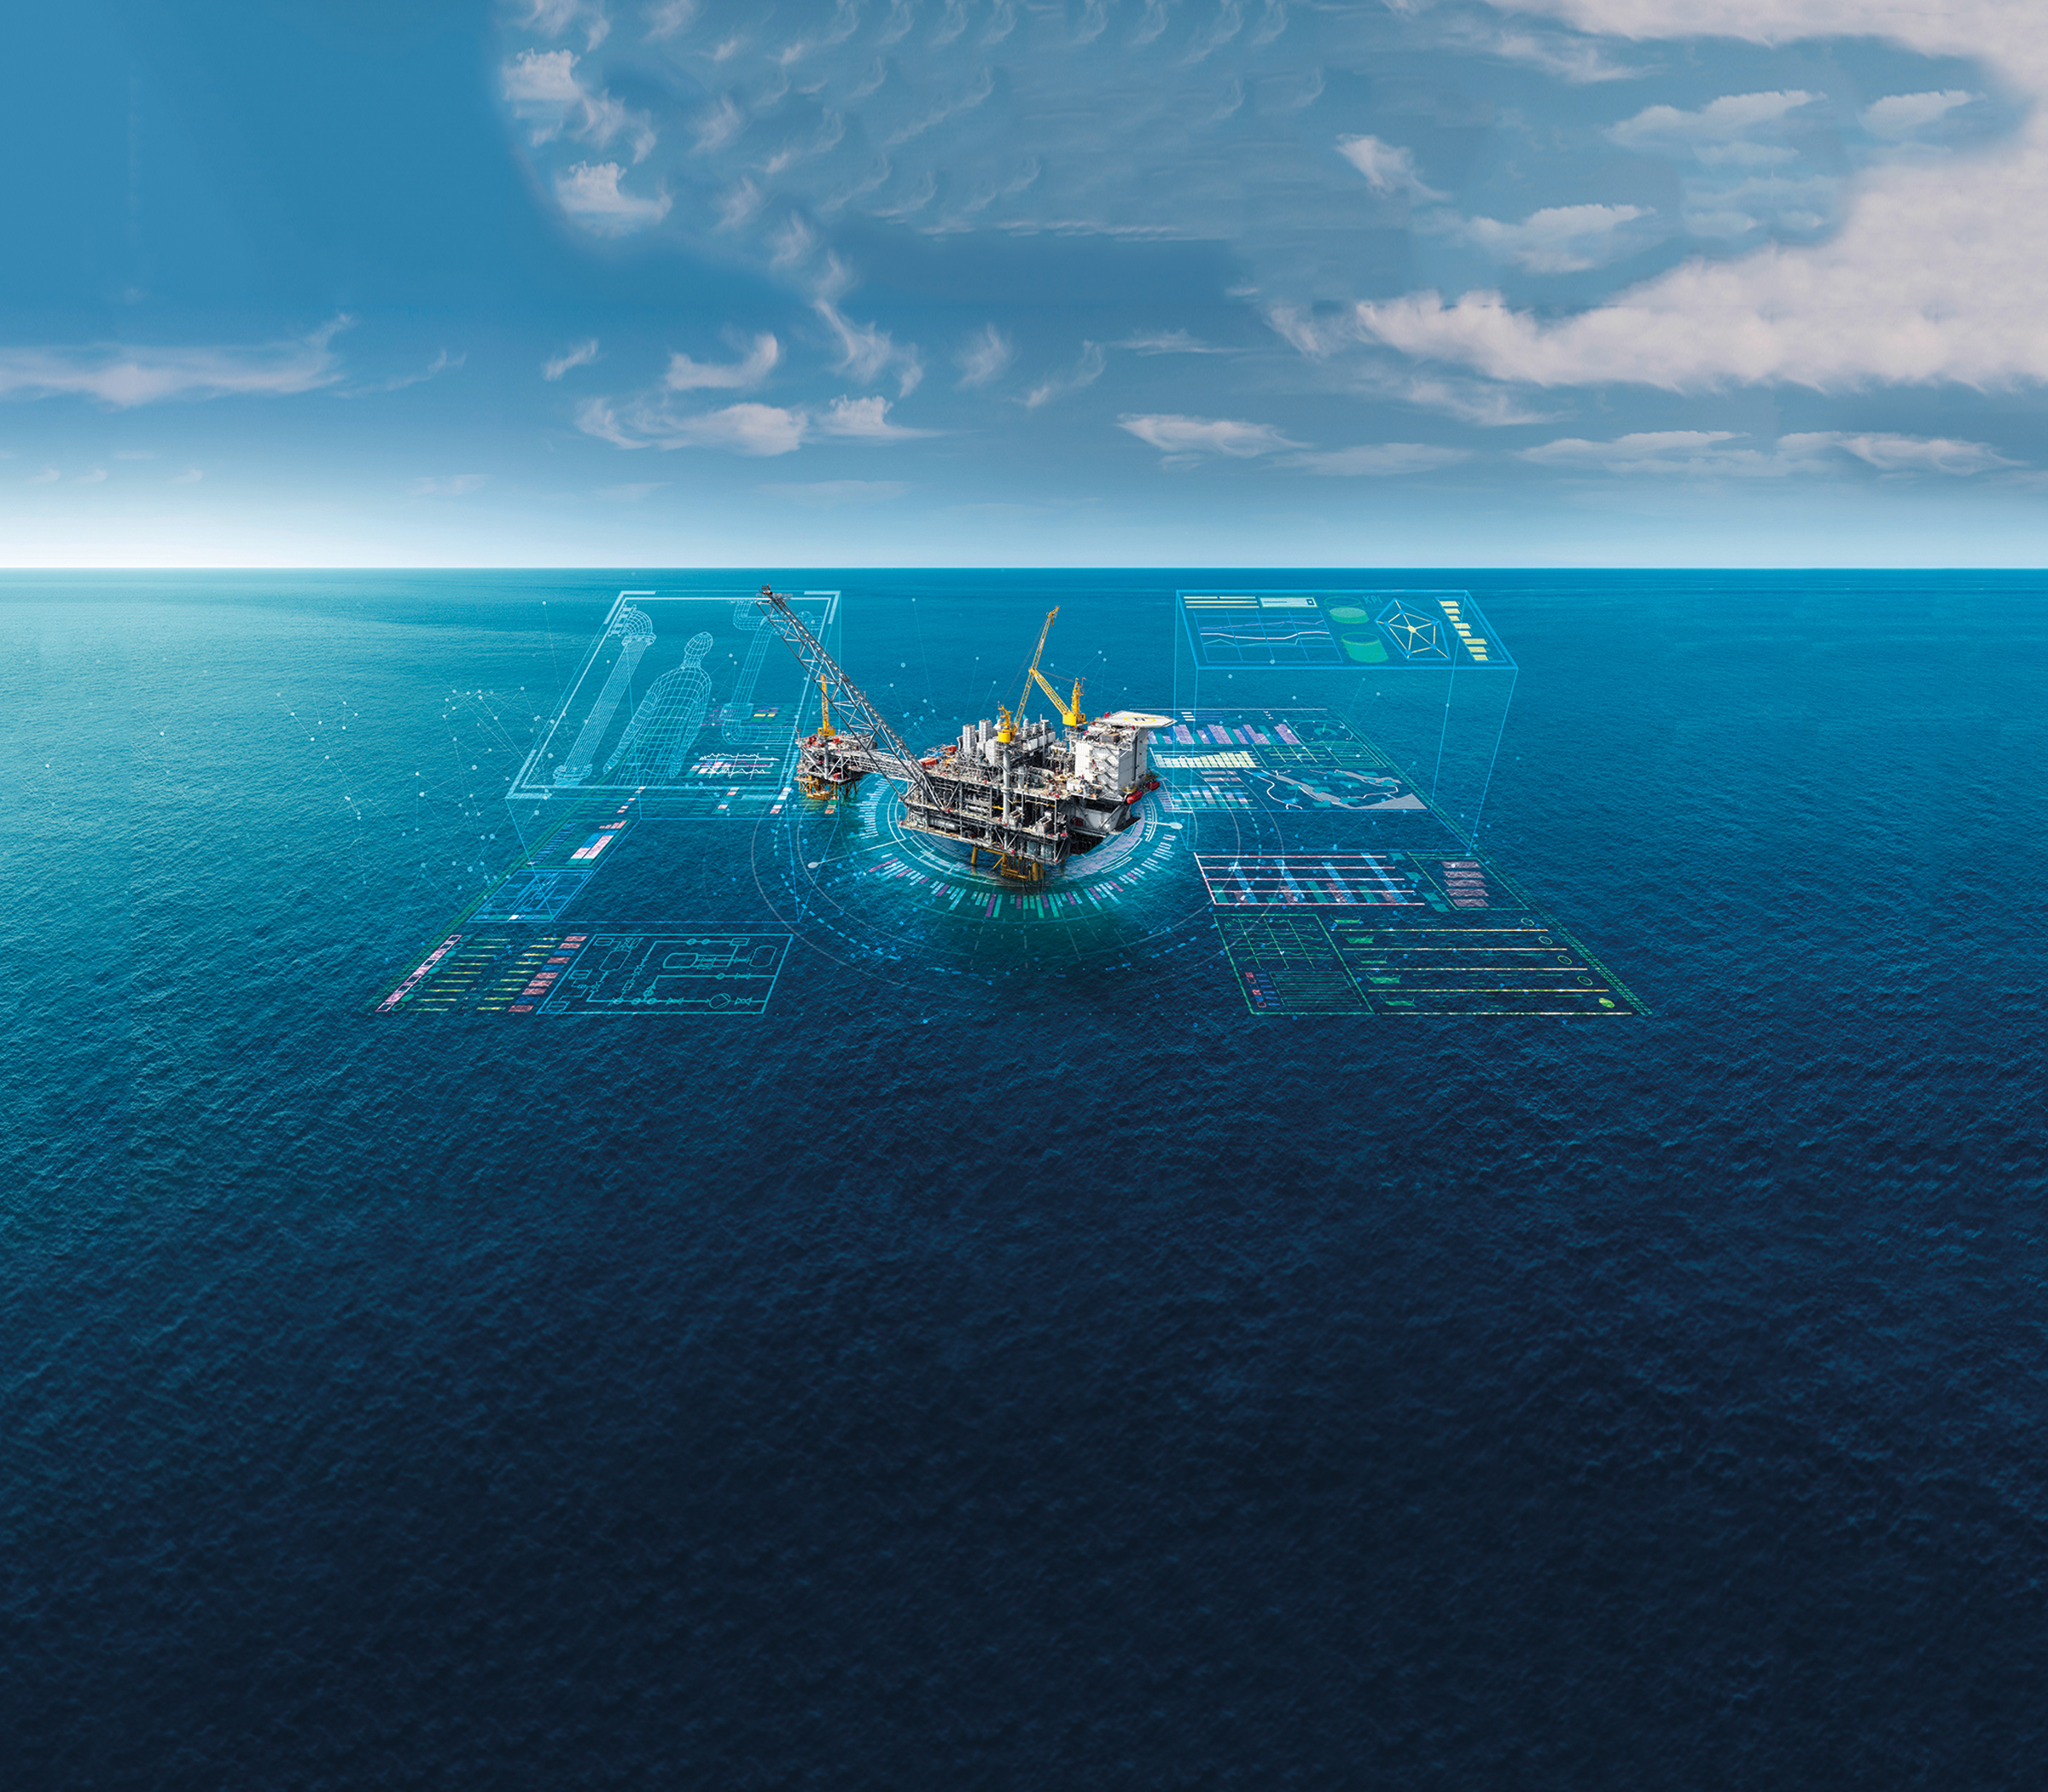 engineering new oil extraction processes virtually